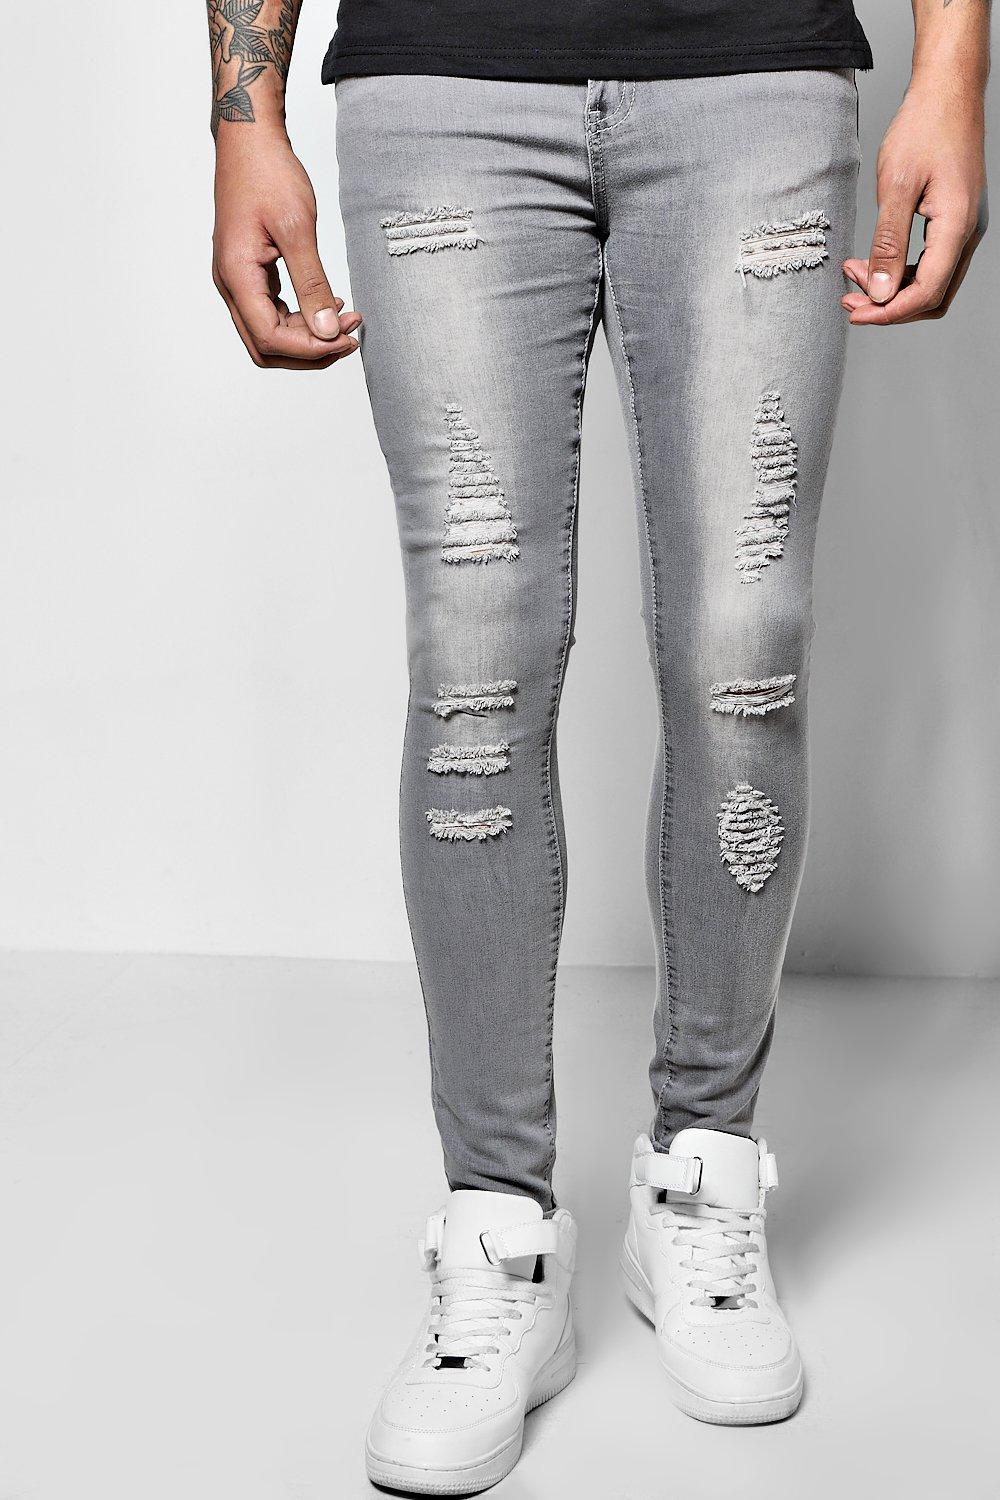 Men's Jeans | Skinny, Straight, Slim Fit, Acid Wash Men's Denim ...